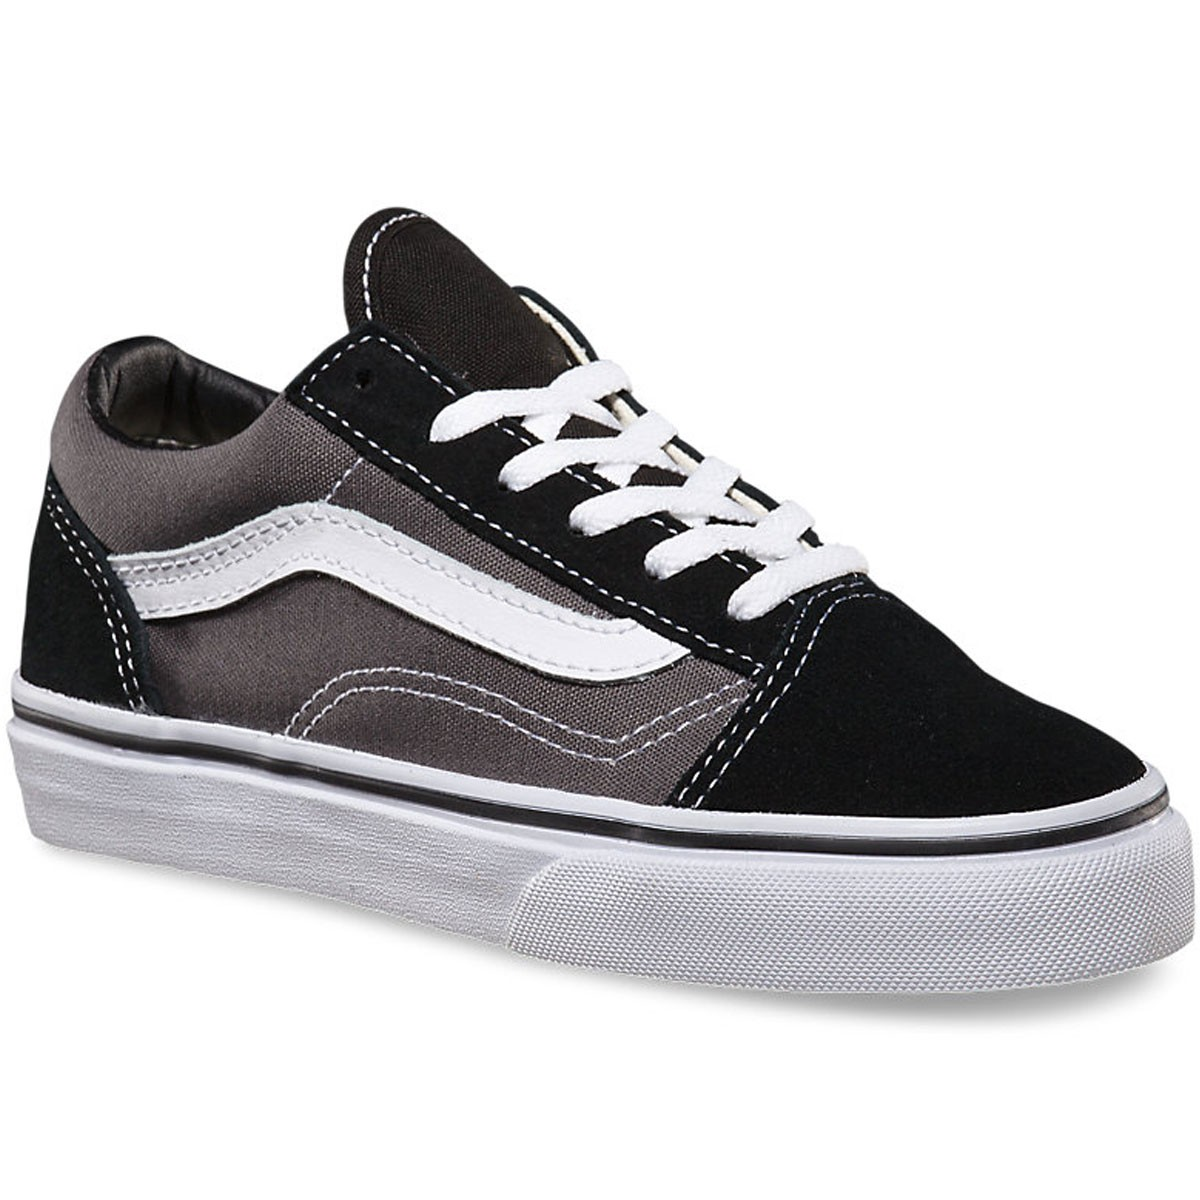 vans old skool youth shoes black pewter. Black Bedroom Furniture Sets. Home Design Ideas